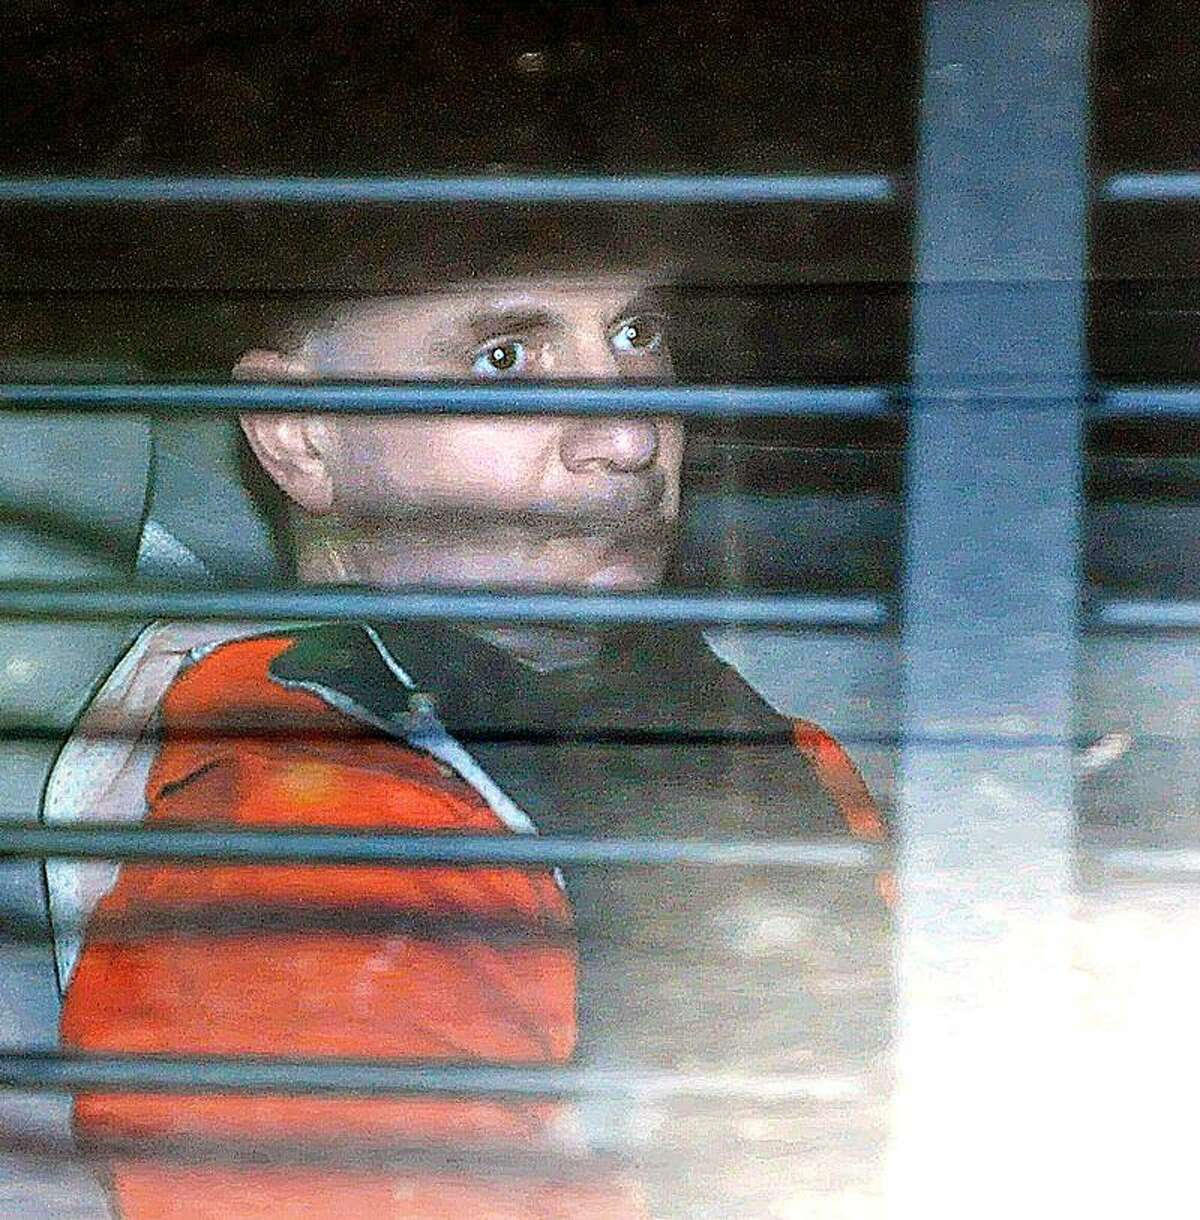 Steven Hayes looks out of the transport vehicle as he leaves court after being convicted on 16 out of 17 charges against him in the Cheshire home invasion murder trial. Photo/Peter Casolino ***